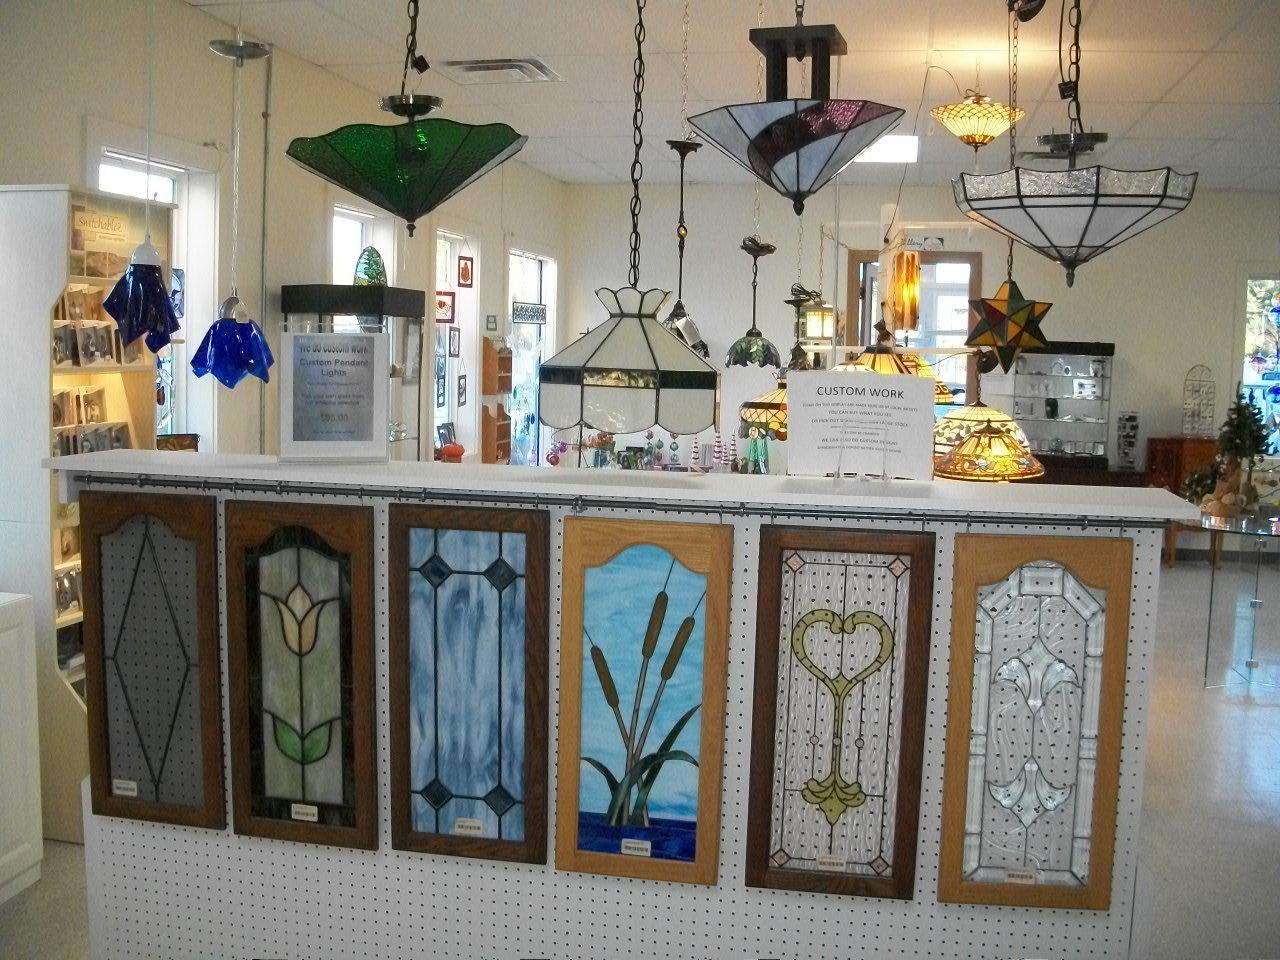 Custom stained glass lamps and cabinets display